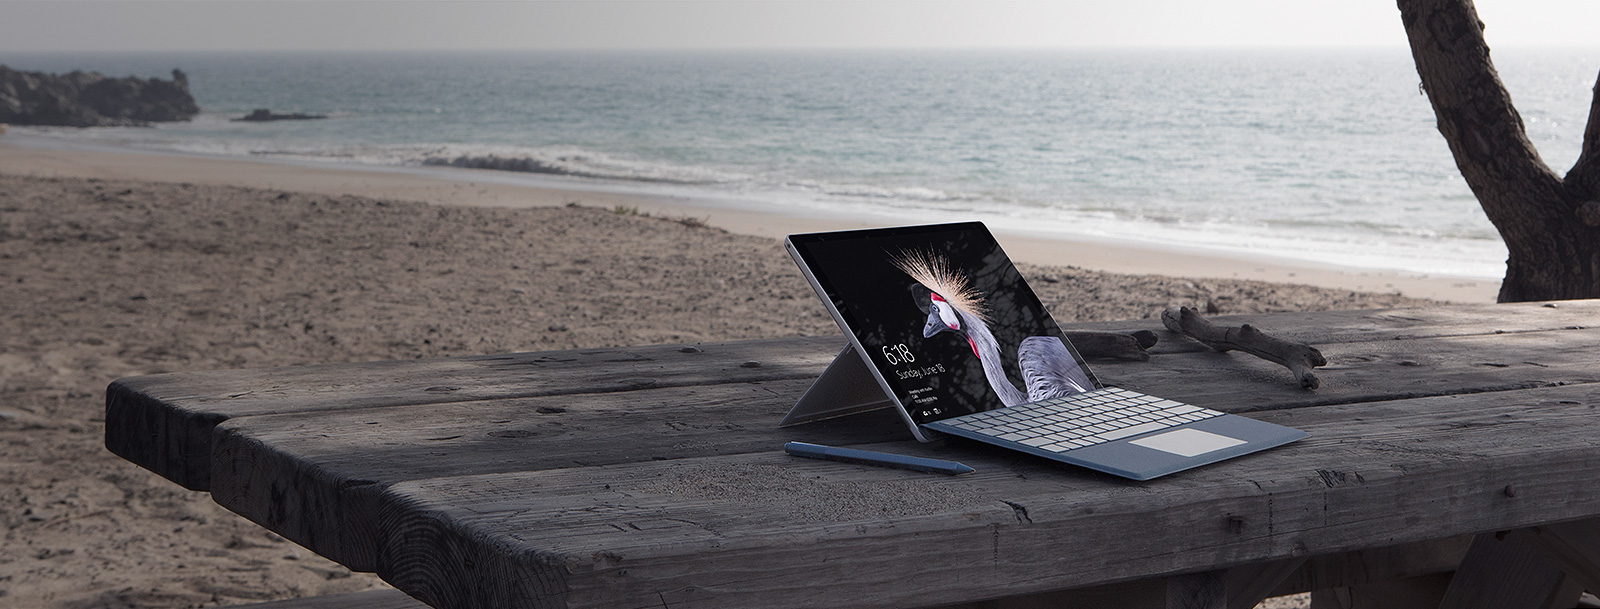 Open laptop on a wood table at the beach